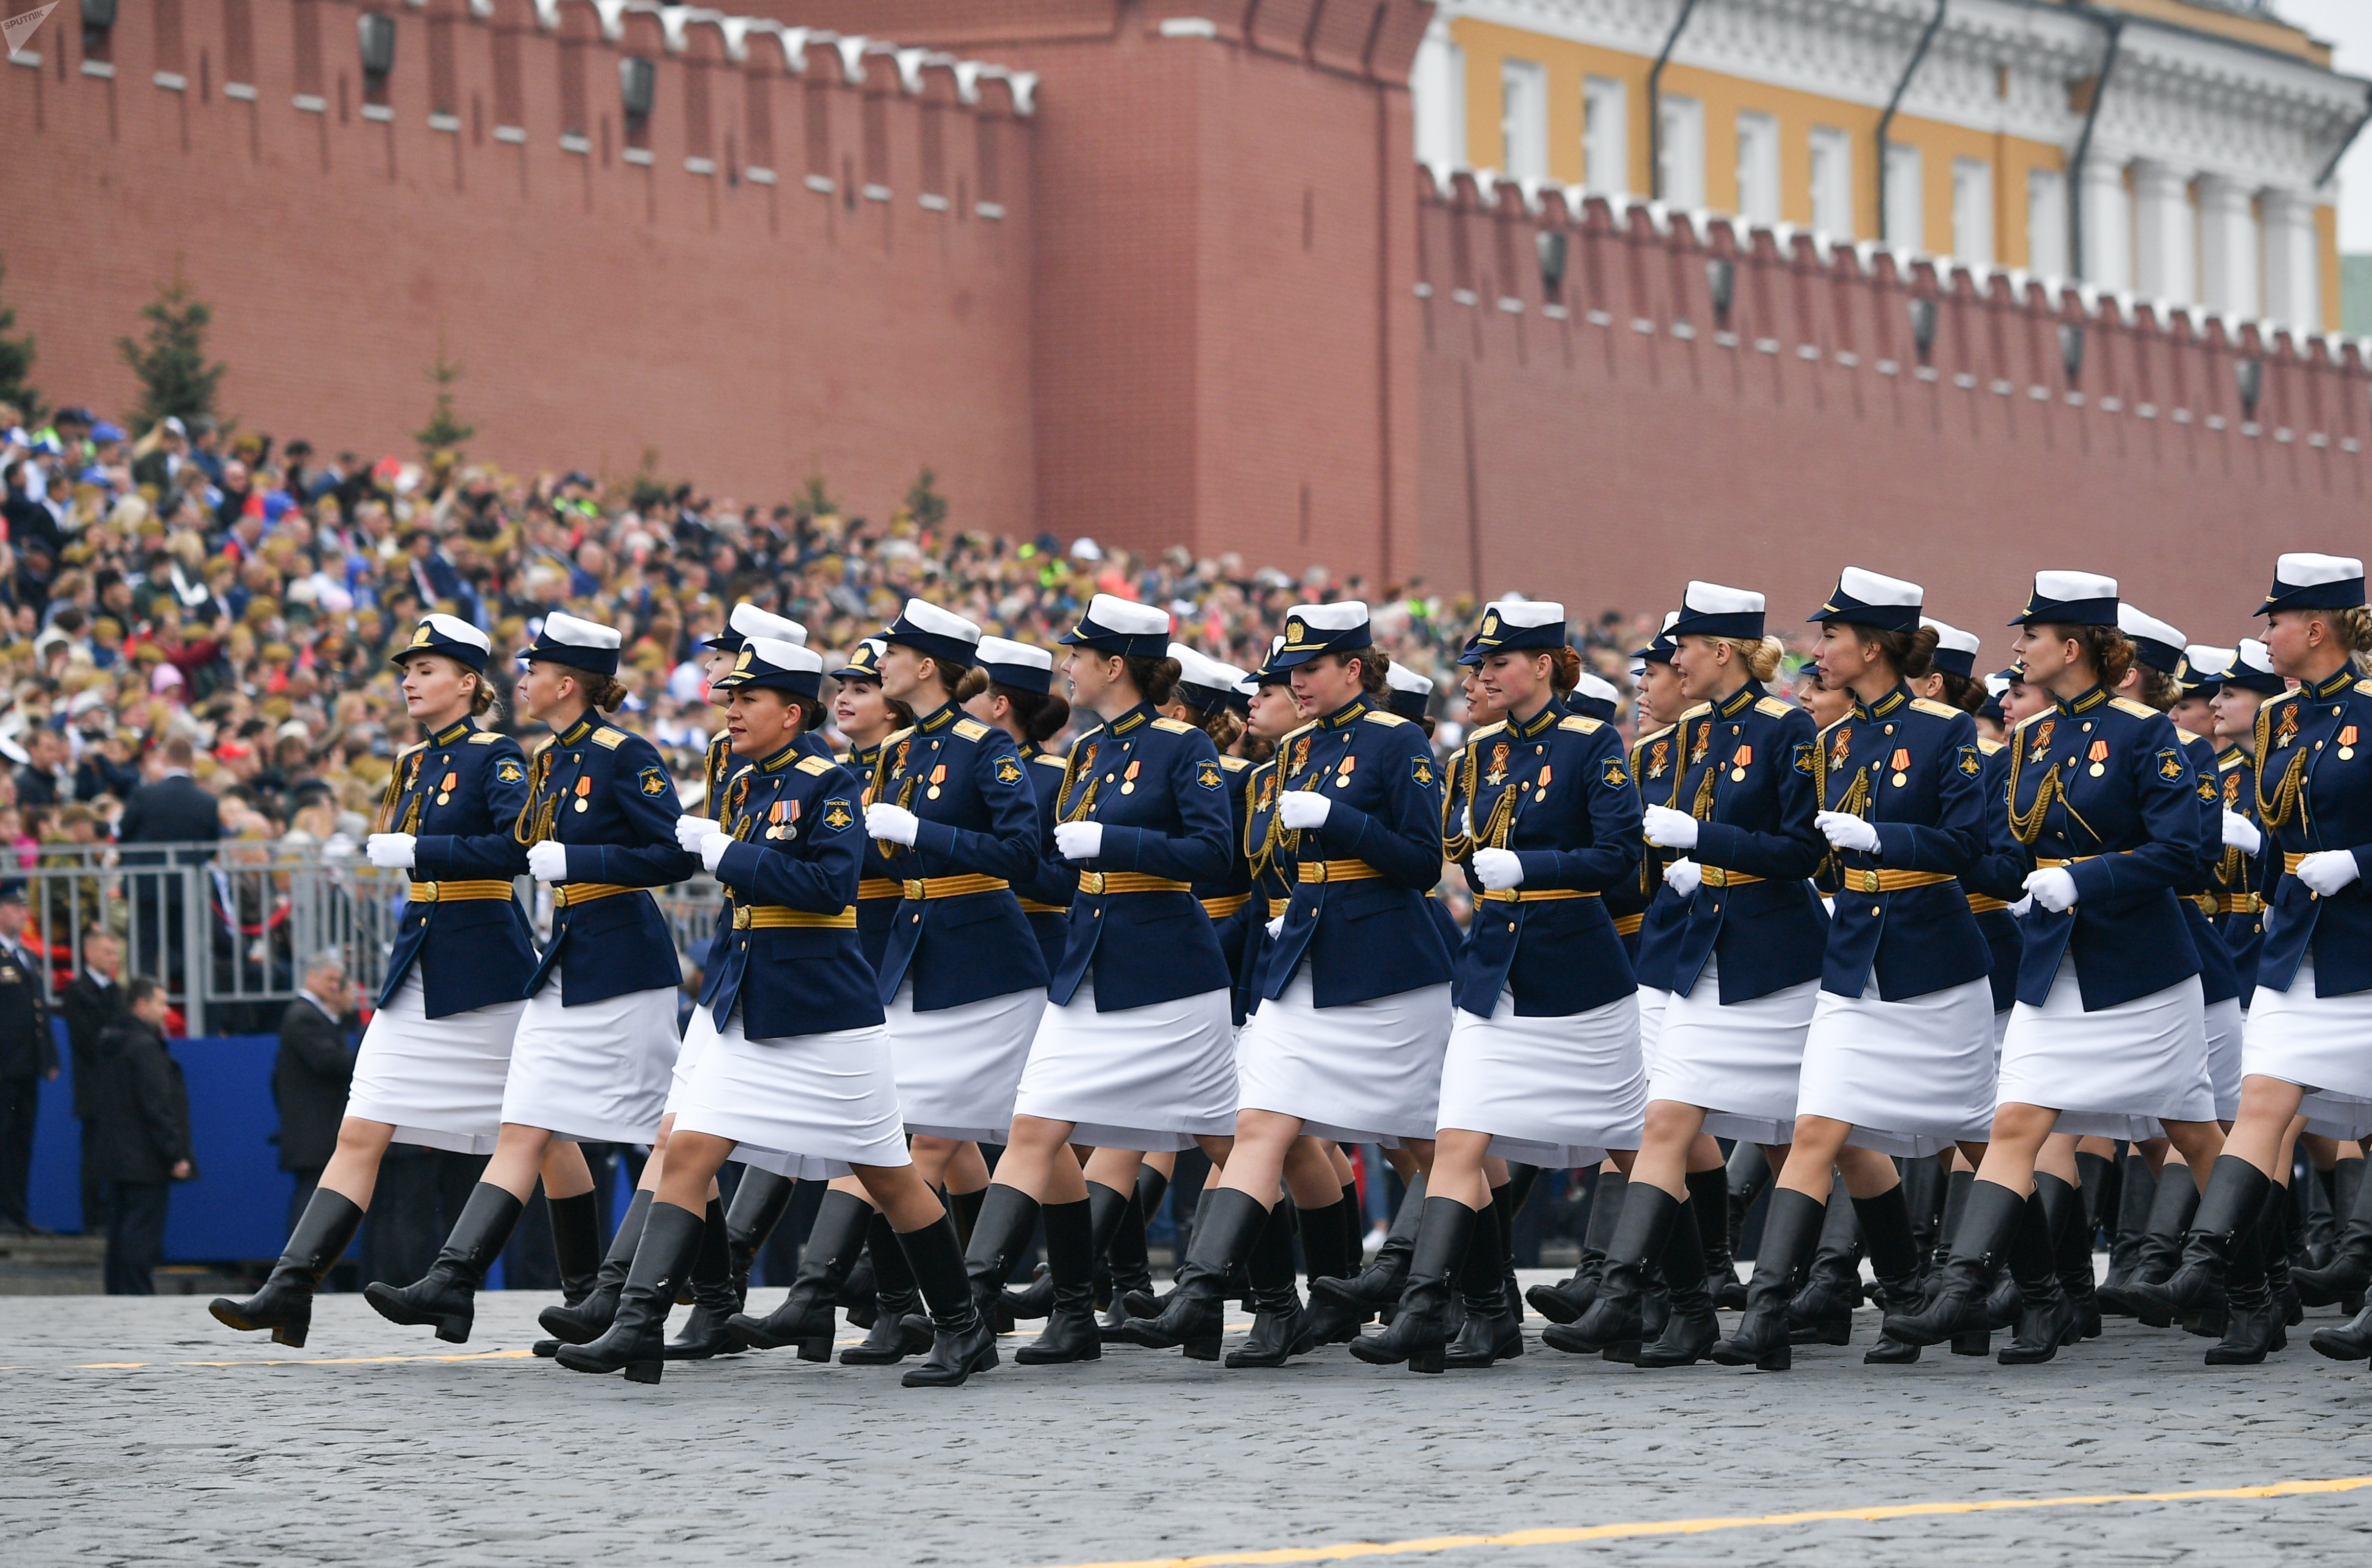 Female service members of the Zhukov Air and Space Defence Academy during the Victory Day Parade in Moscow on 9 May, 2019